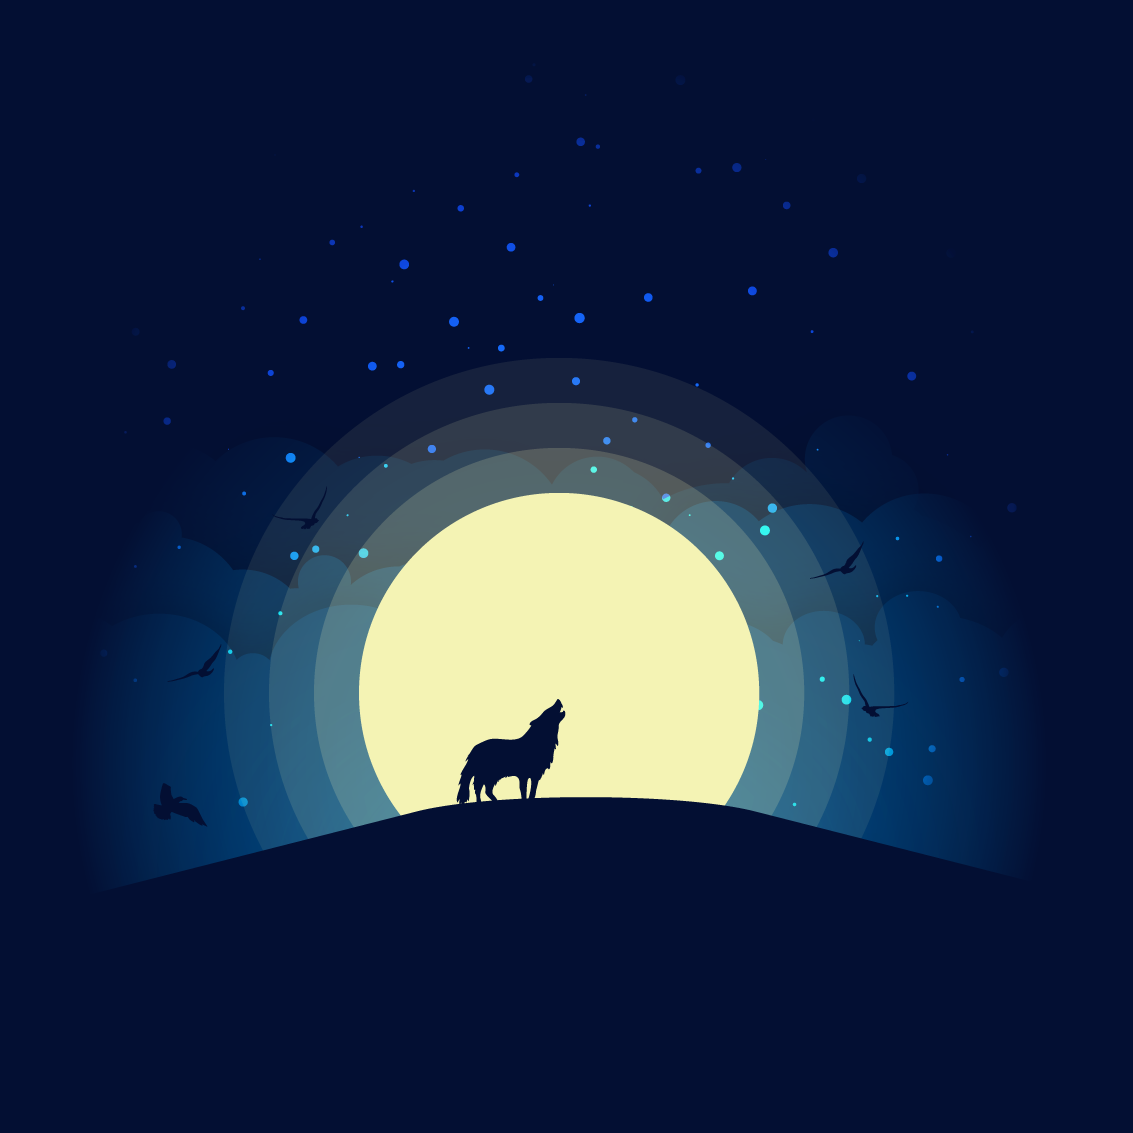 Wolf, Birds, and Stars over the Moon